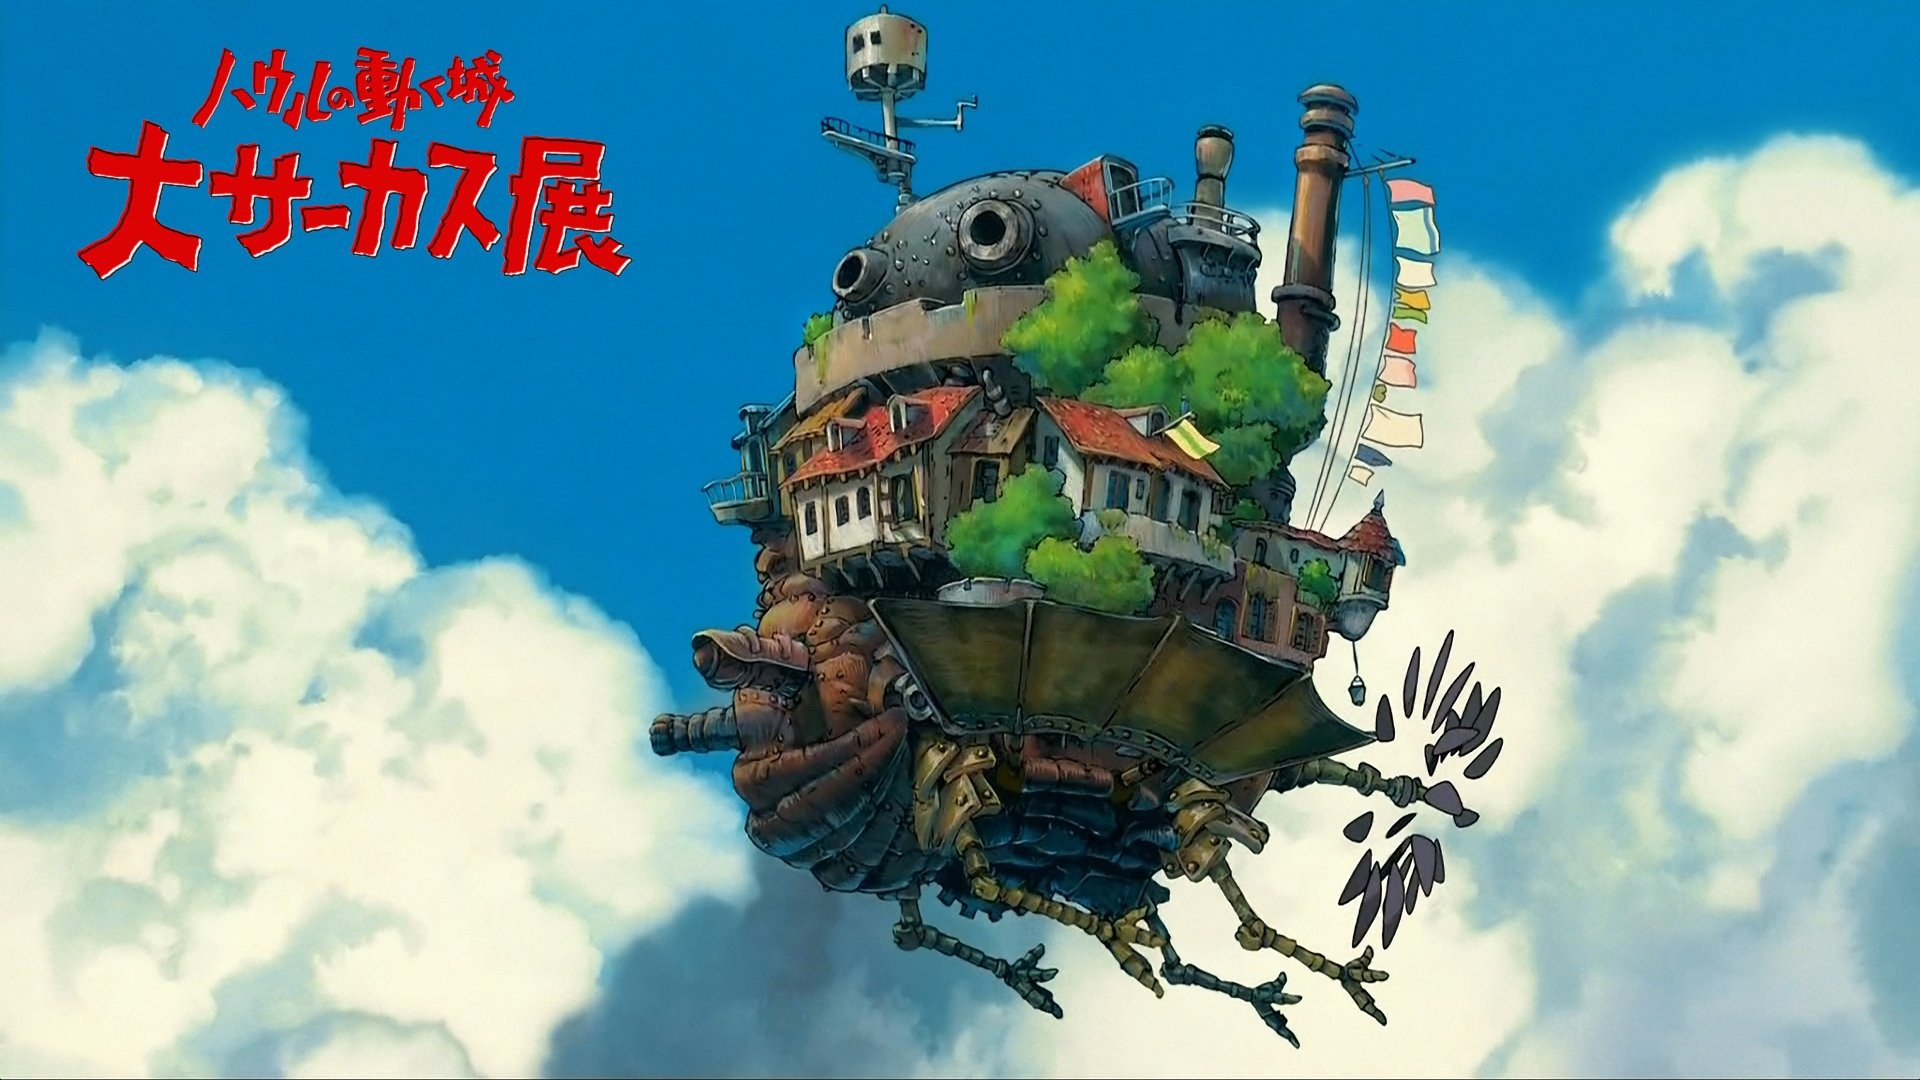 Howls Moving Castle Wallpapers ·① WallpaperTag